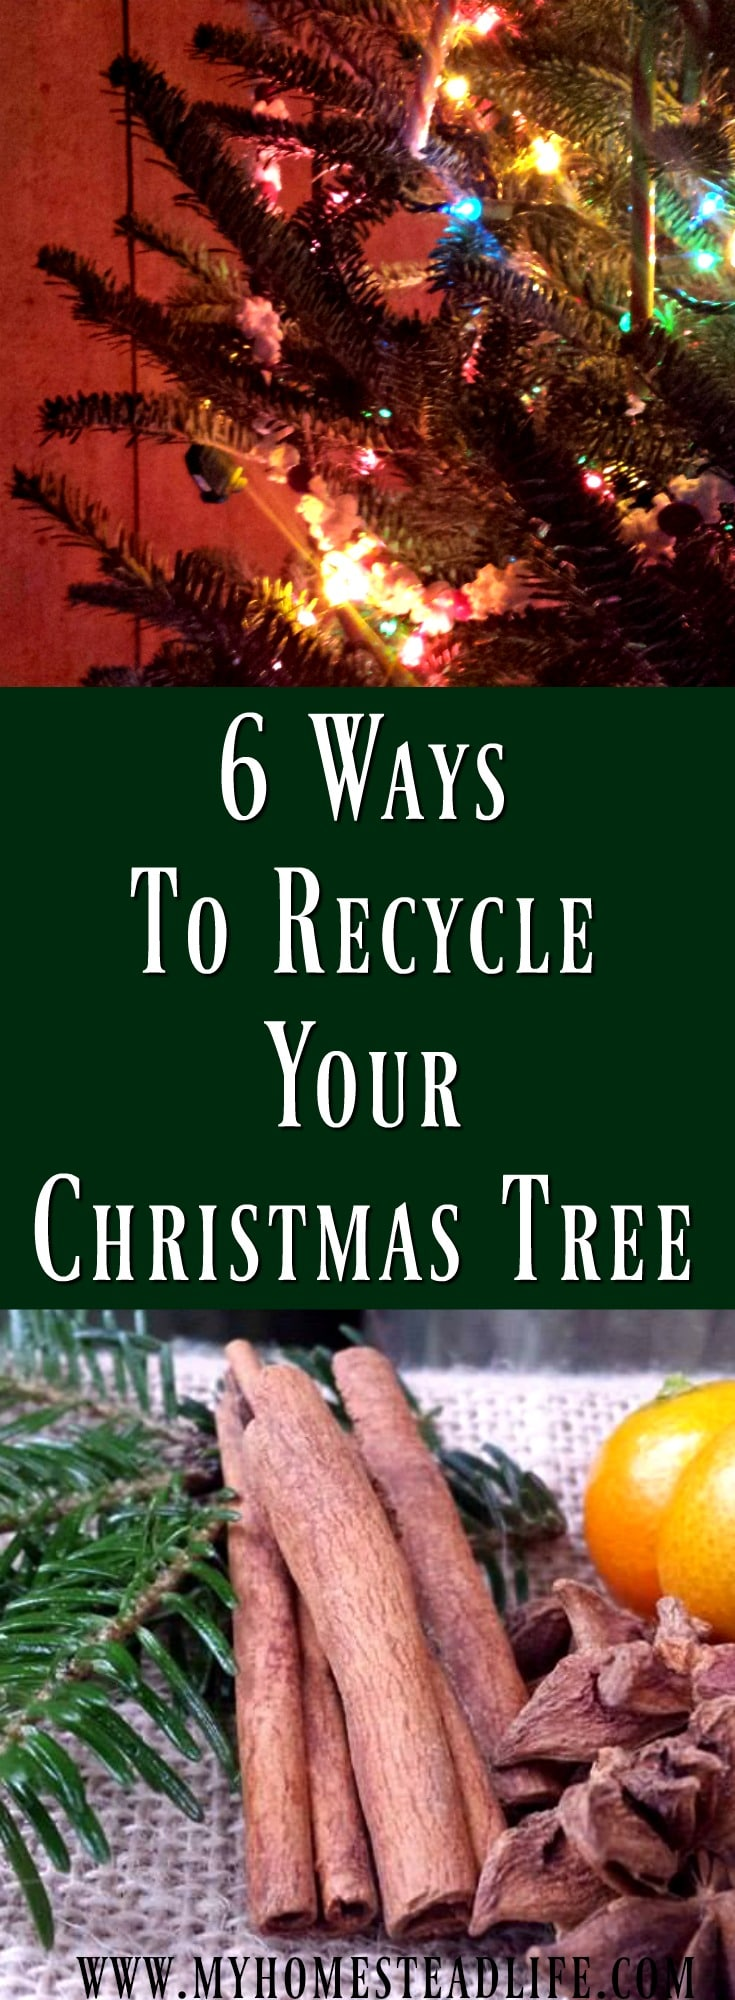 6 Ways To Recycle Your Christmas Tree